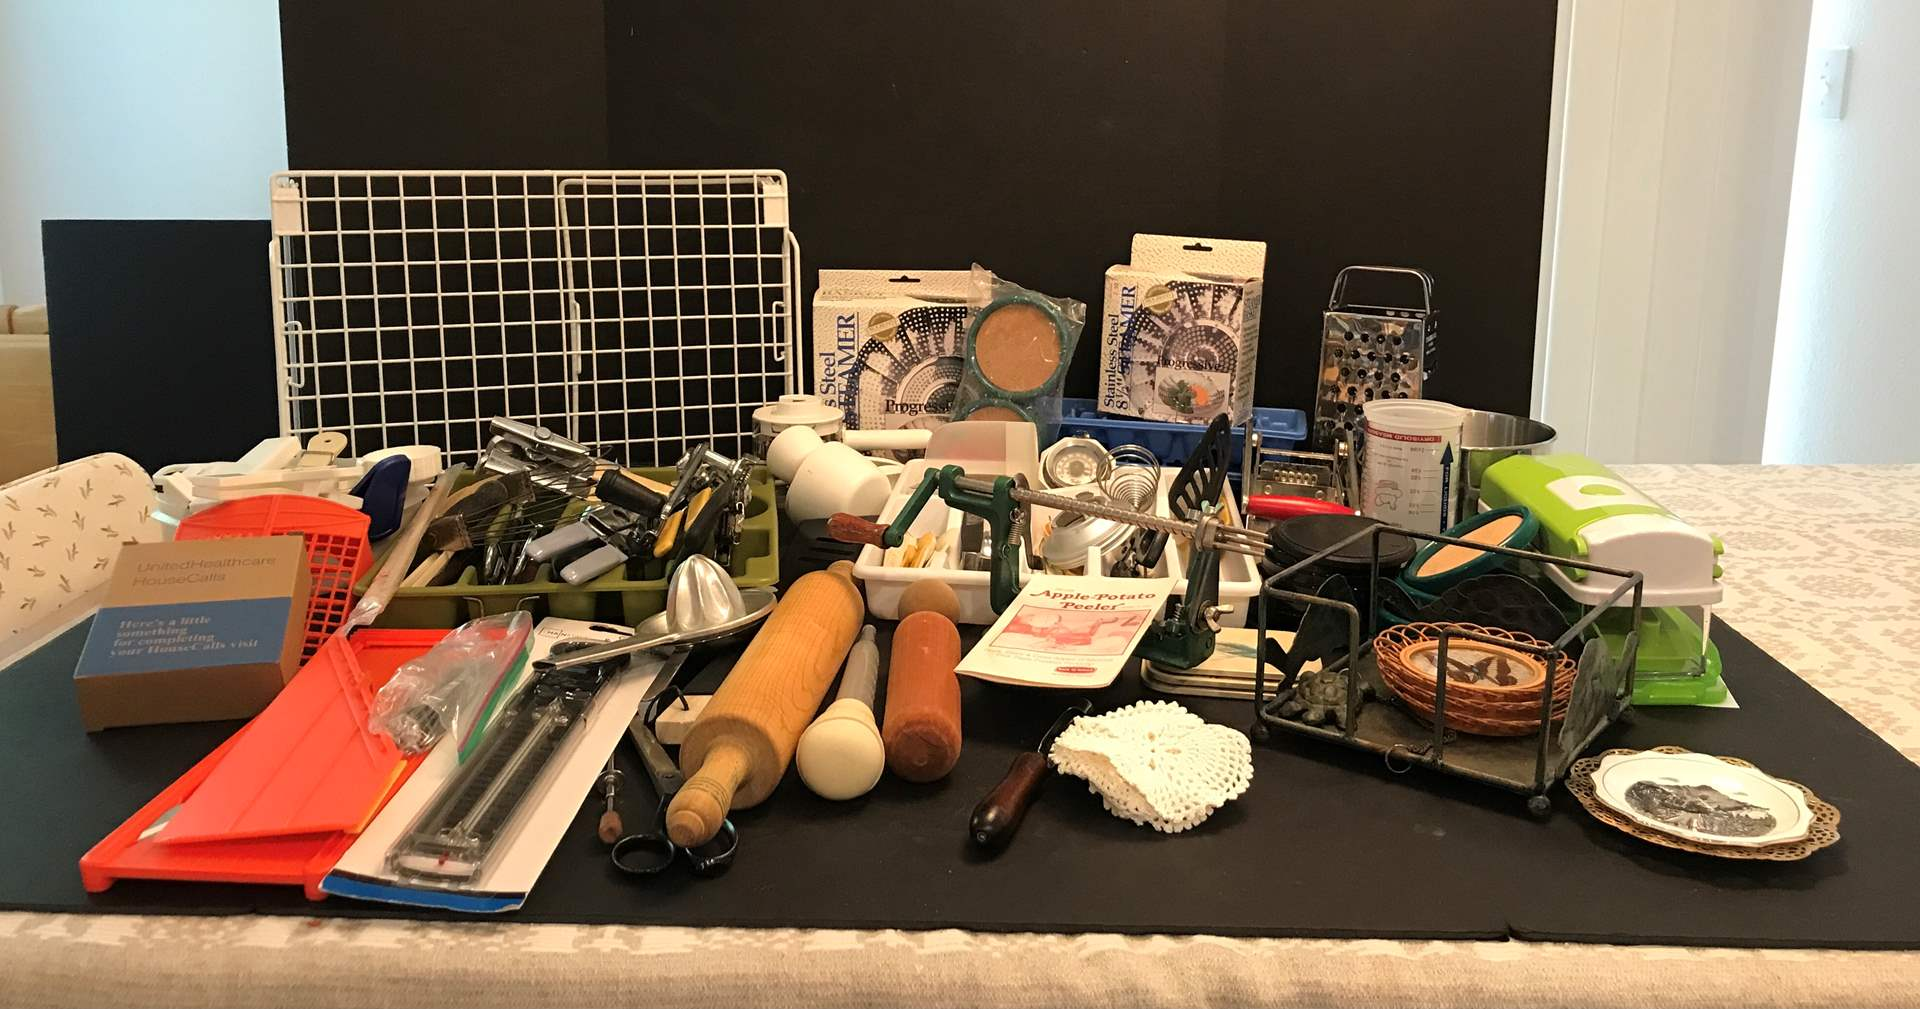 Lot # 64 - Large Lot Of Kitchen Items: Apple Peeler, Veggie Choppers, Measuring Spoons, Can Openers, Cheese Graters & More (main image)